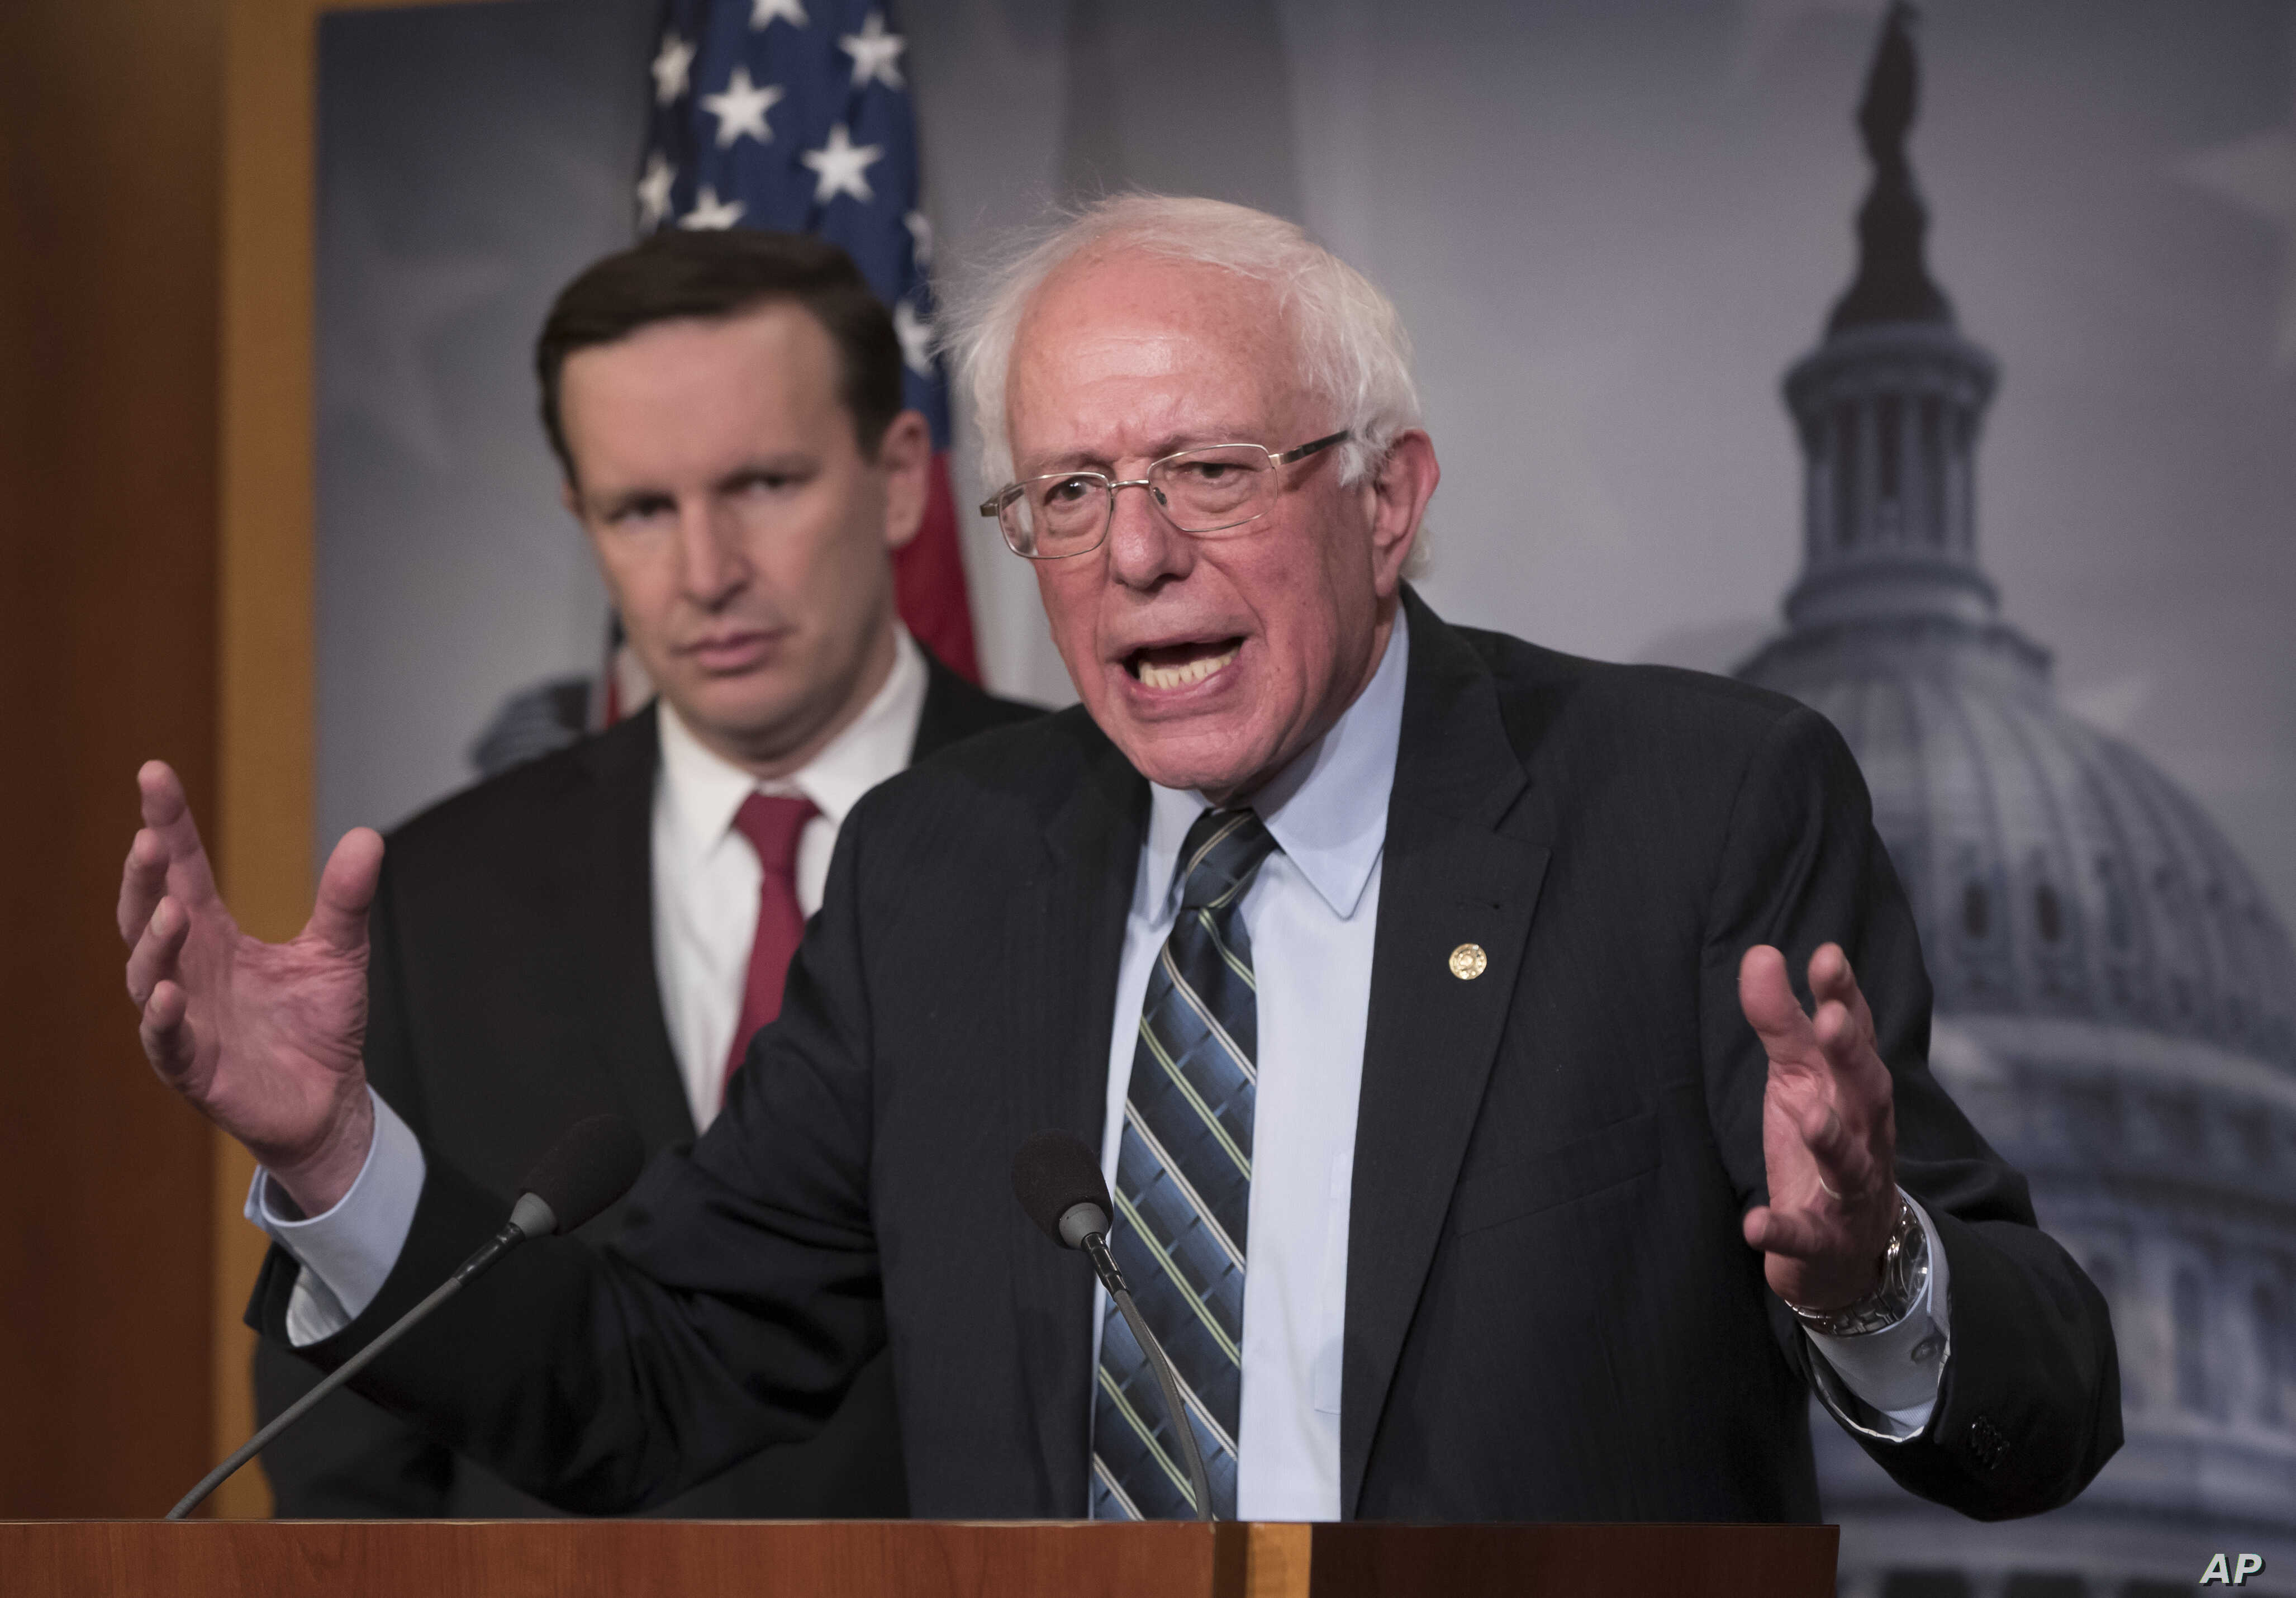 Sen. Bernie Sanders, I-Vt., joined at left by Sen. Chris Murphy, D-Conn., holds a news conference after the Senate passed a resolution he introduced that would pull assistance from the Saudi-led war in Yemen, a measure to rebuke Saudi Arabia after th...